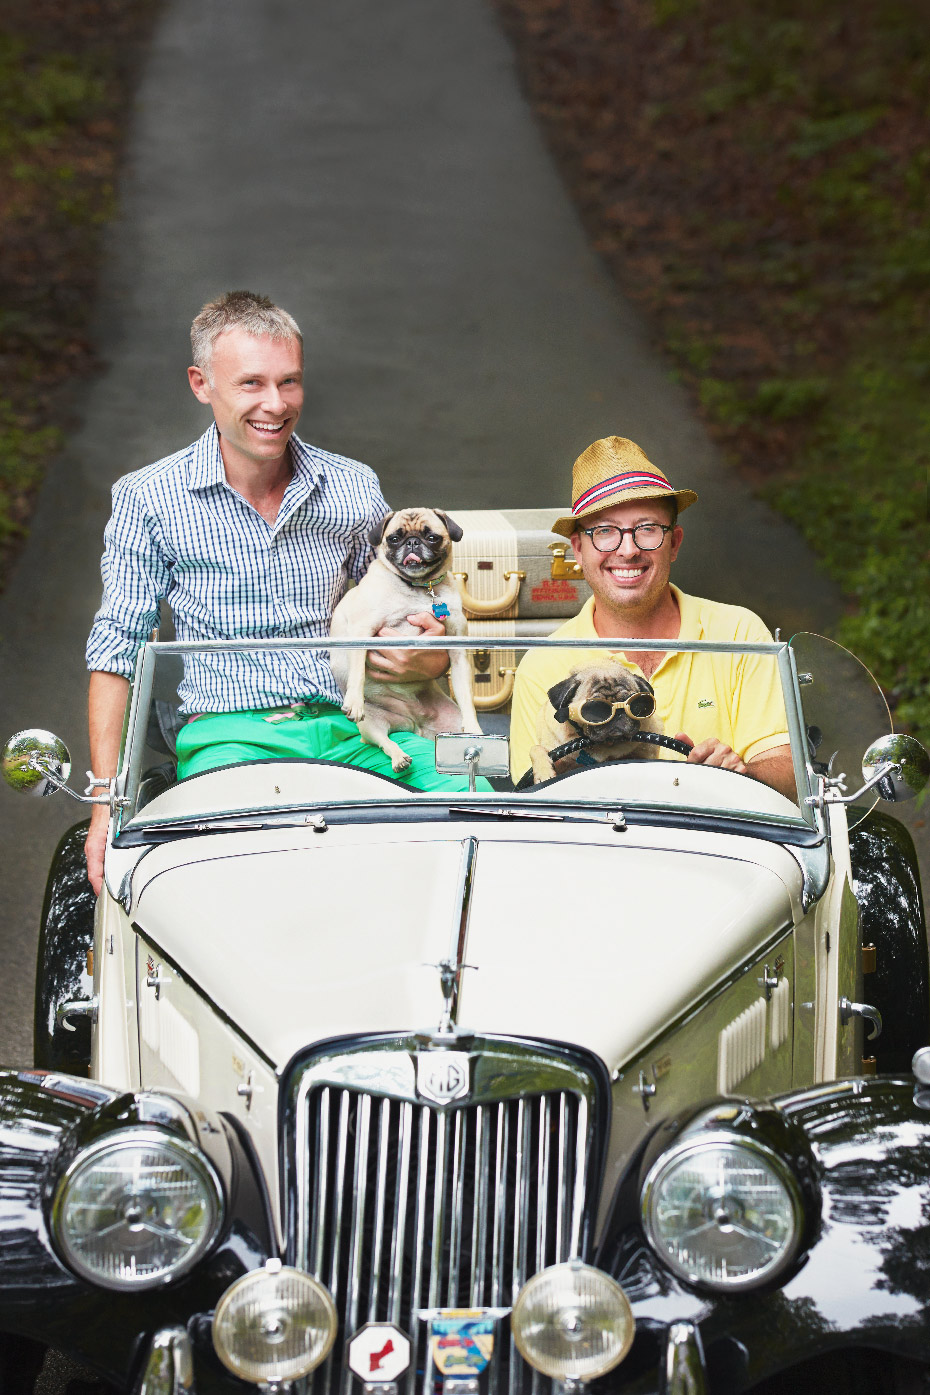 Stacey Van Berkel Photography I Mad Cap Cottage guys with pugs in vintage car I Jason Oliver Nixon & John Loecke I High Point, North Carolina